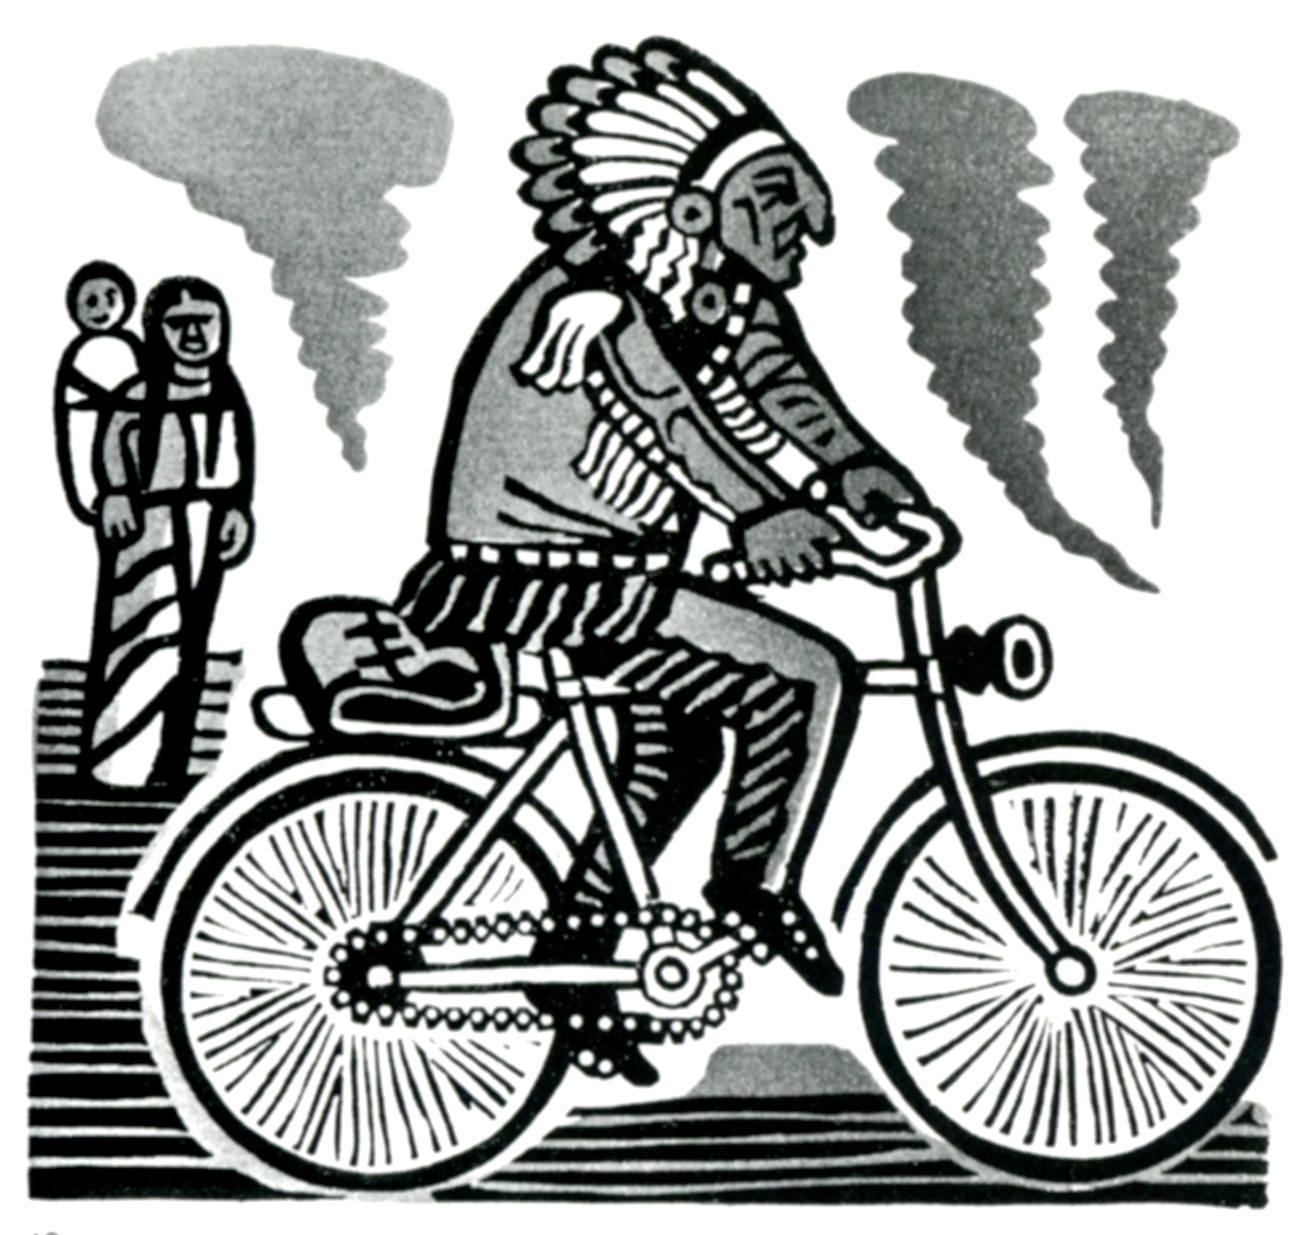 edward_bawden-graphic-designer-engraved-indian